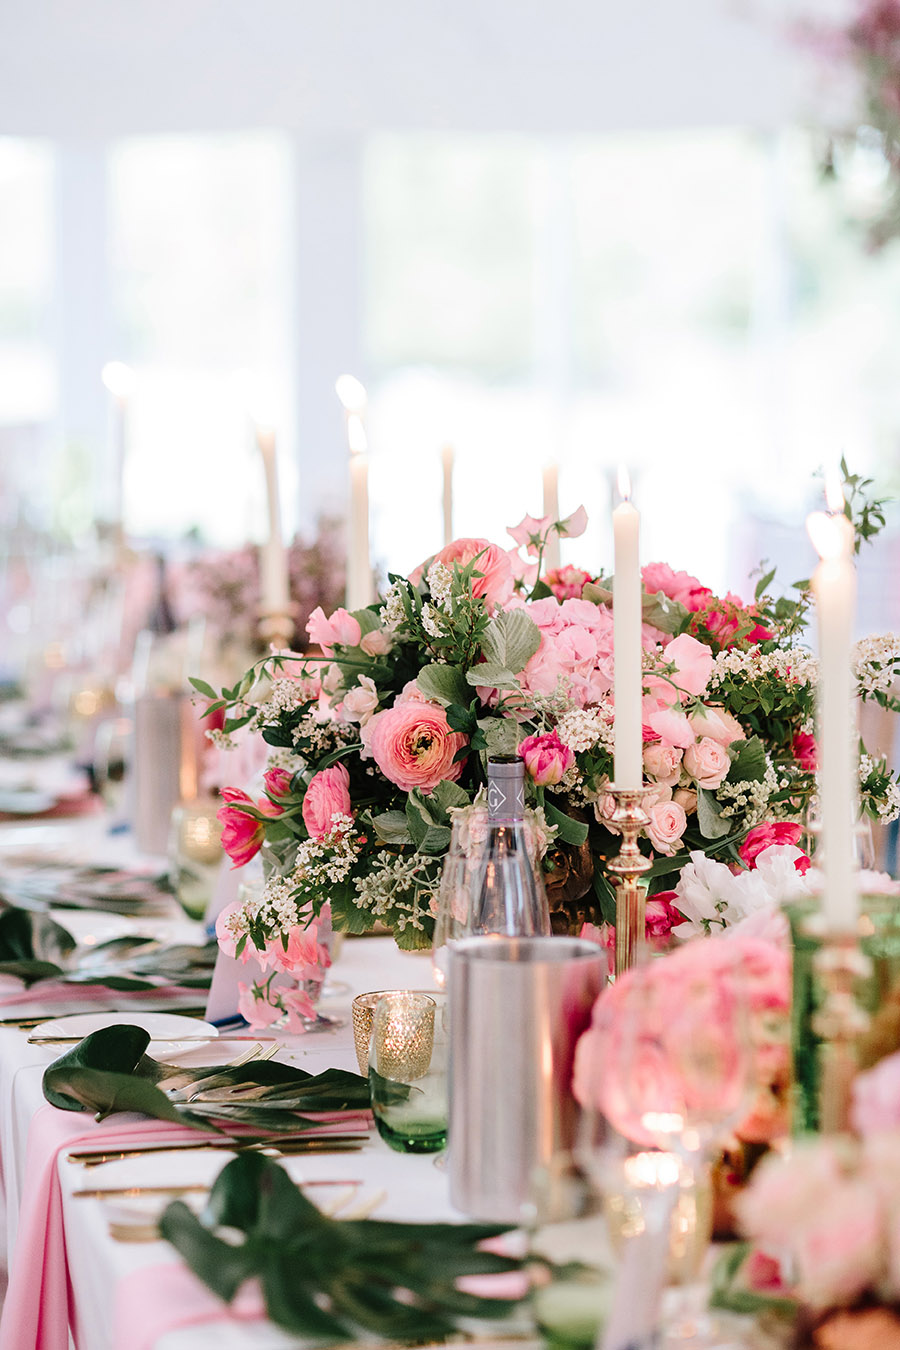 Incredible florals for Maryanne & Adam's beautiful Chippenham Park Hall wedding, with images by Nick + Maria (31)